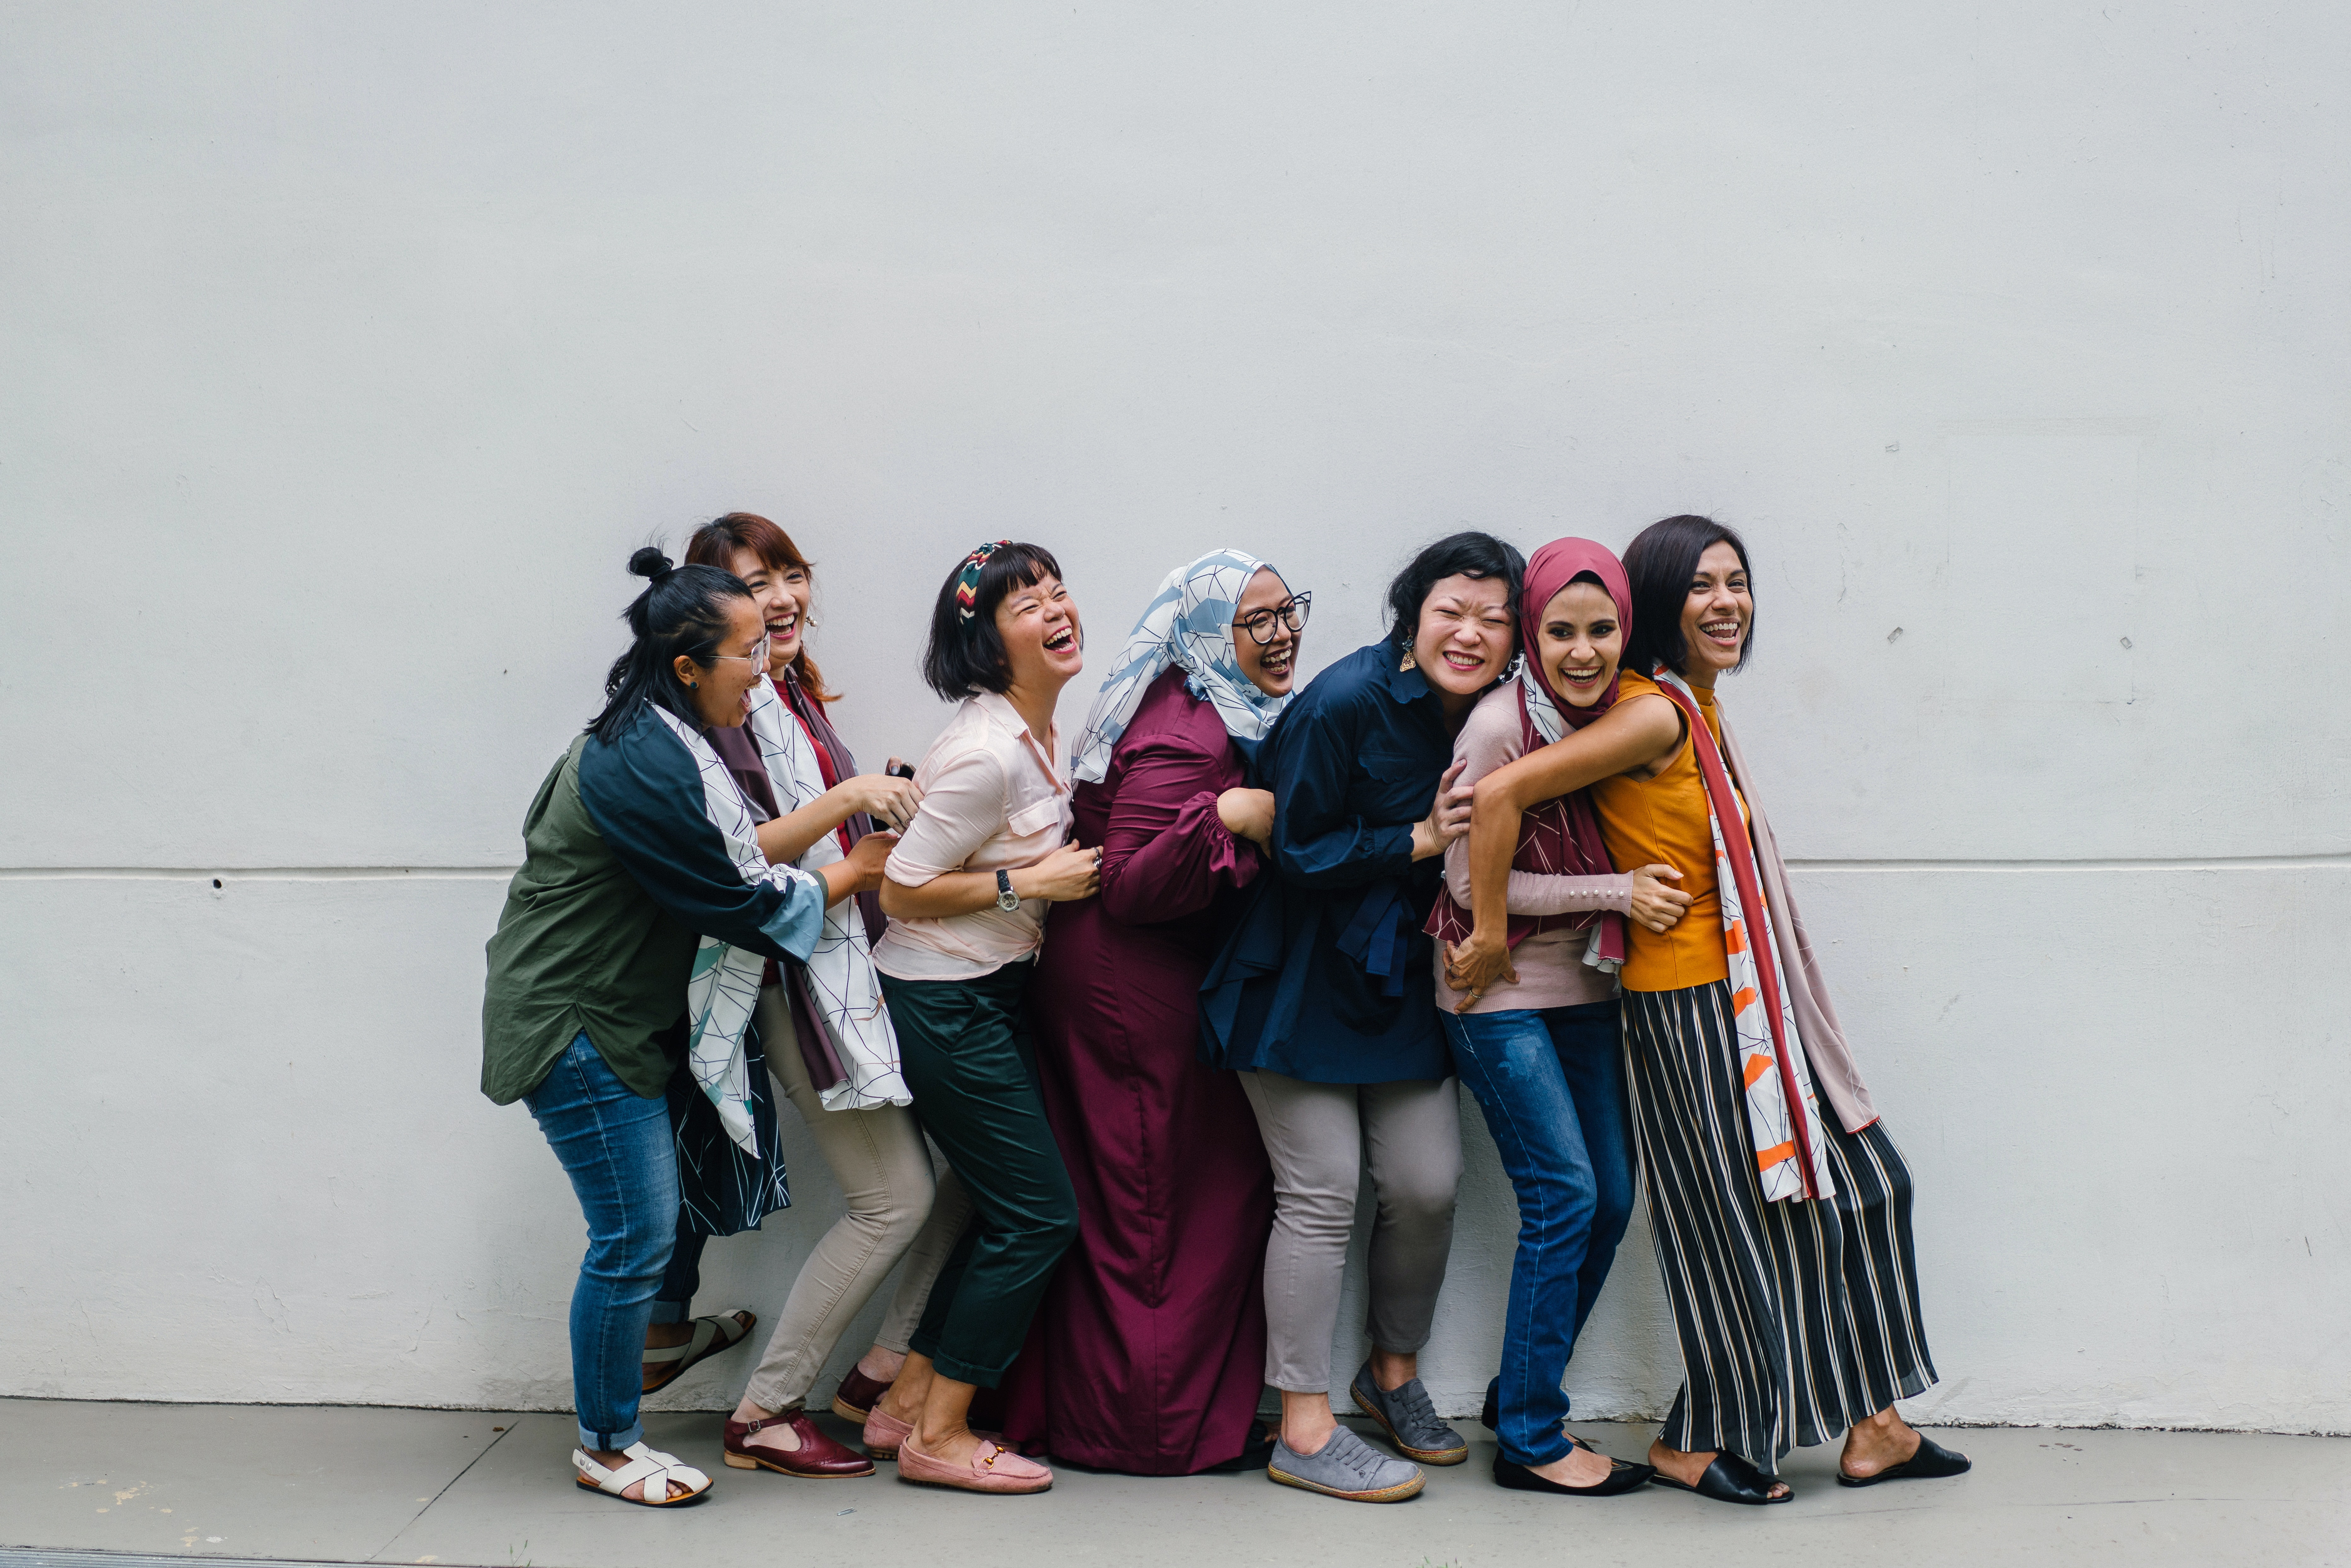 group-of-smiling-women-form-different-cultures